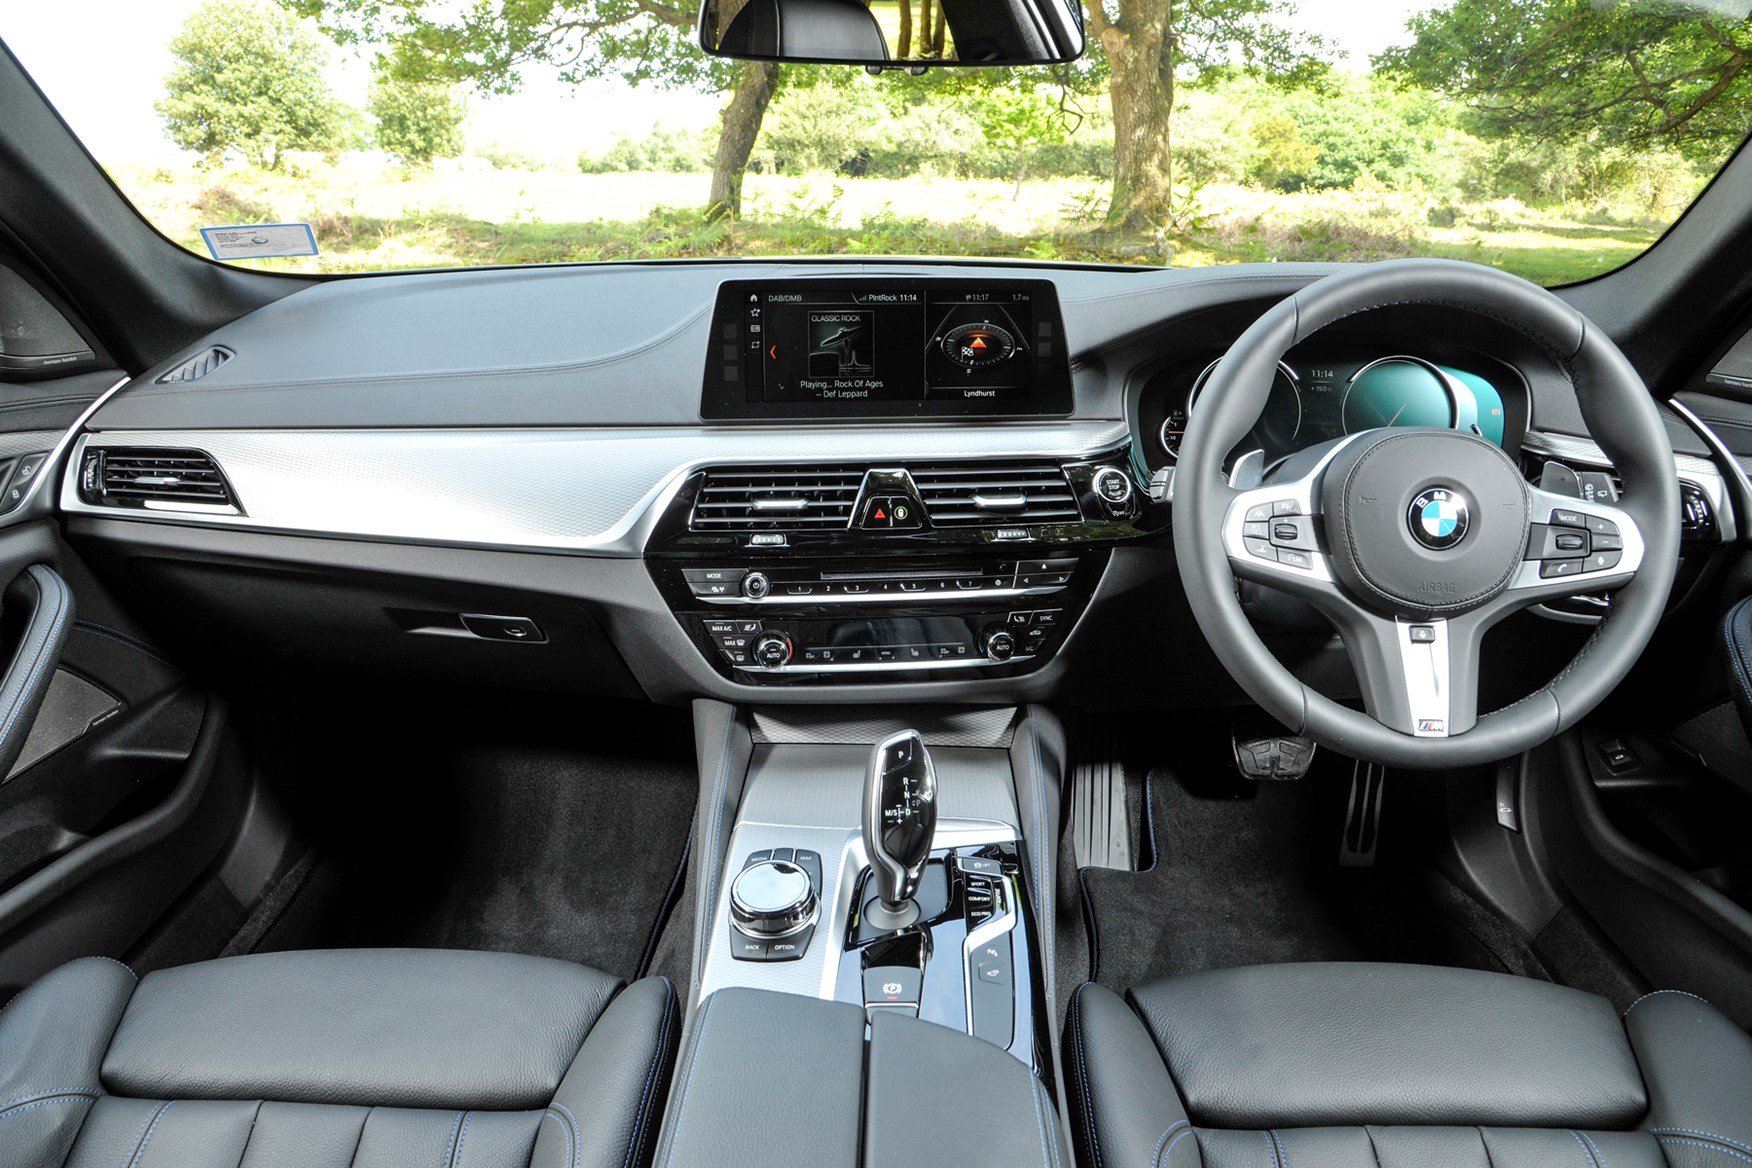 2019 BMW 5 Series dashboard